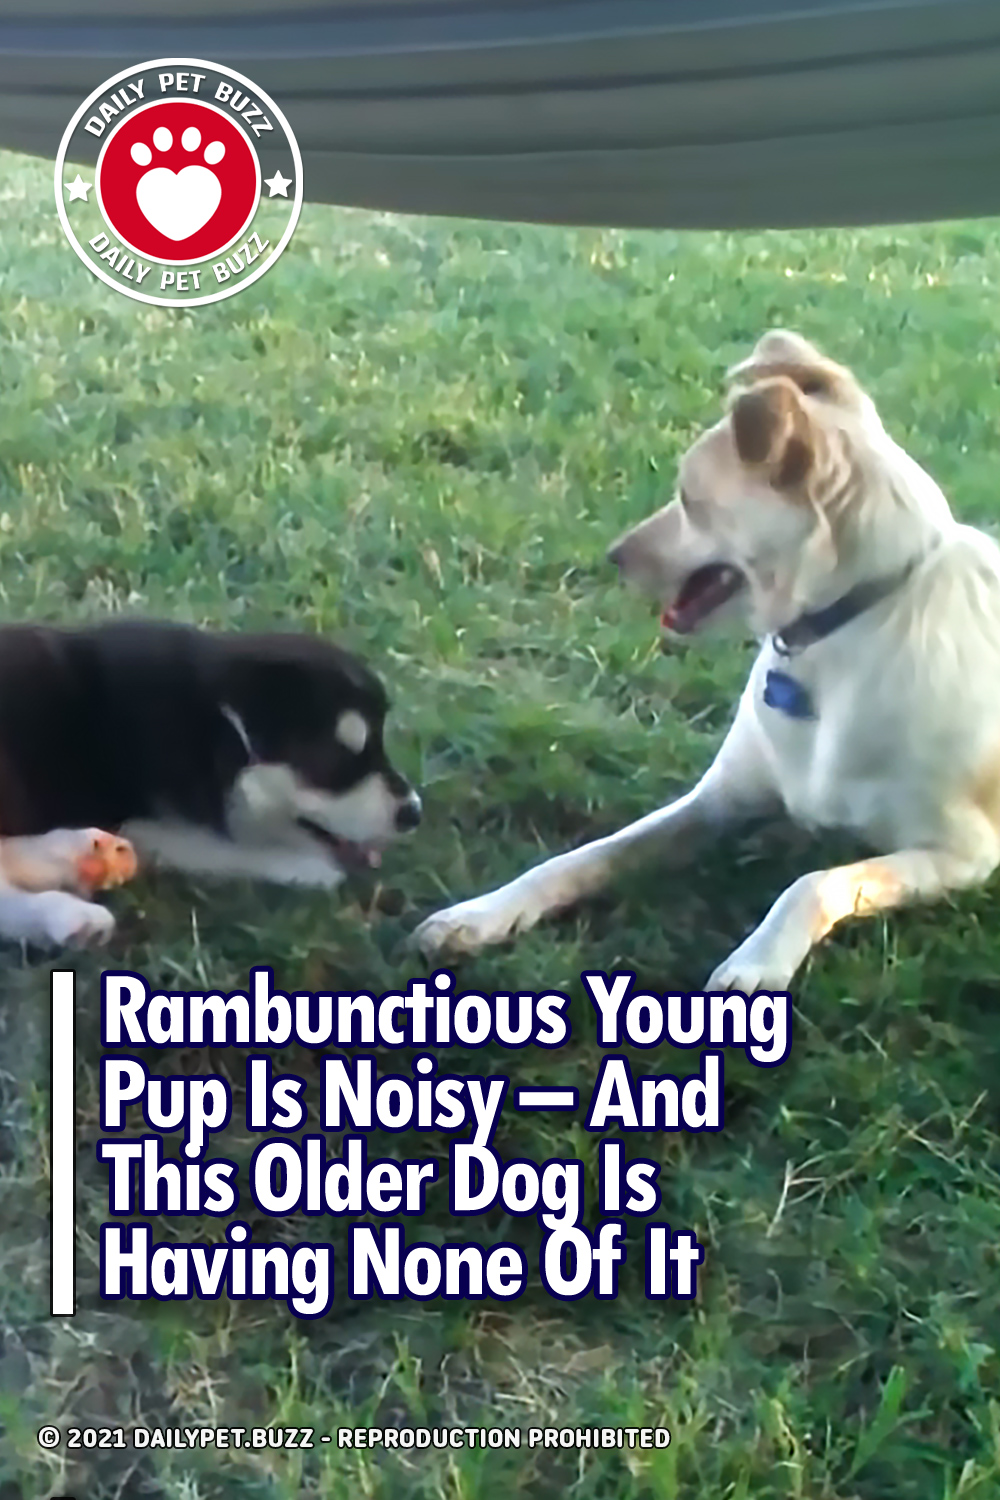 Rambunctious Young Pup Is Noisy – And This Older Dog Is Having None Of It